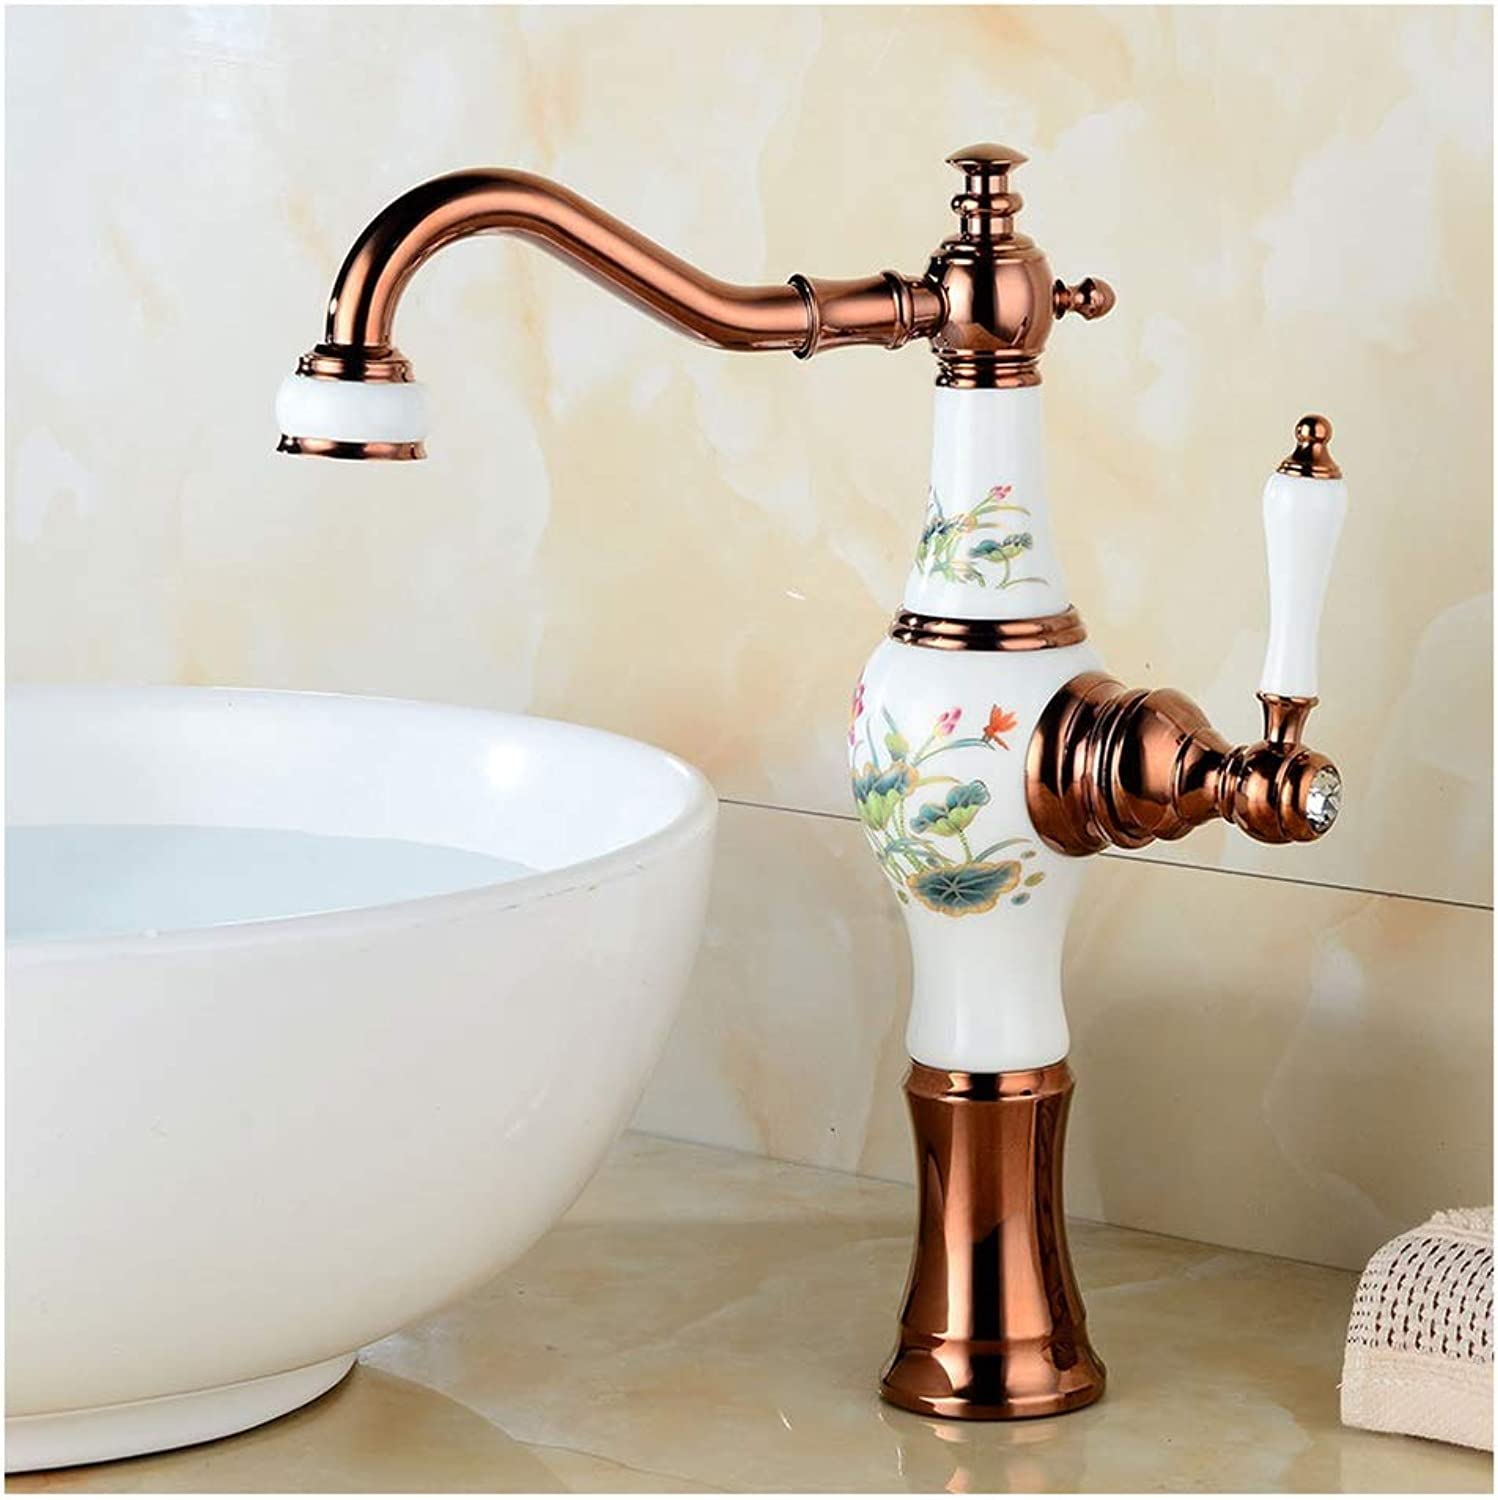 ASHENG Kitchen Sink Taps Bathroom Basin Sink Tap, Faucet, Cloakroom Small Kitchen Lavatory Sink Mixer Tap In Brushed Stainless Steel